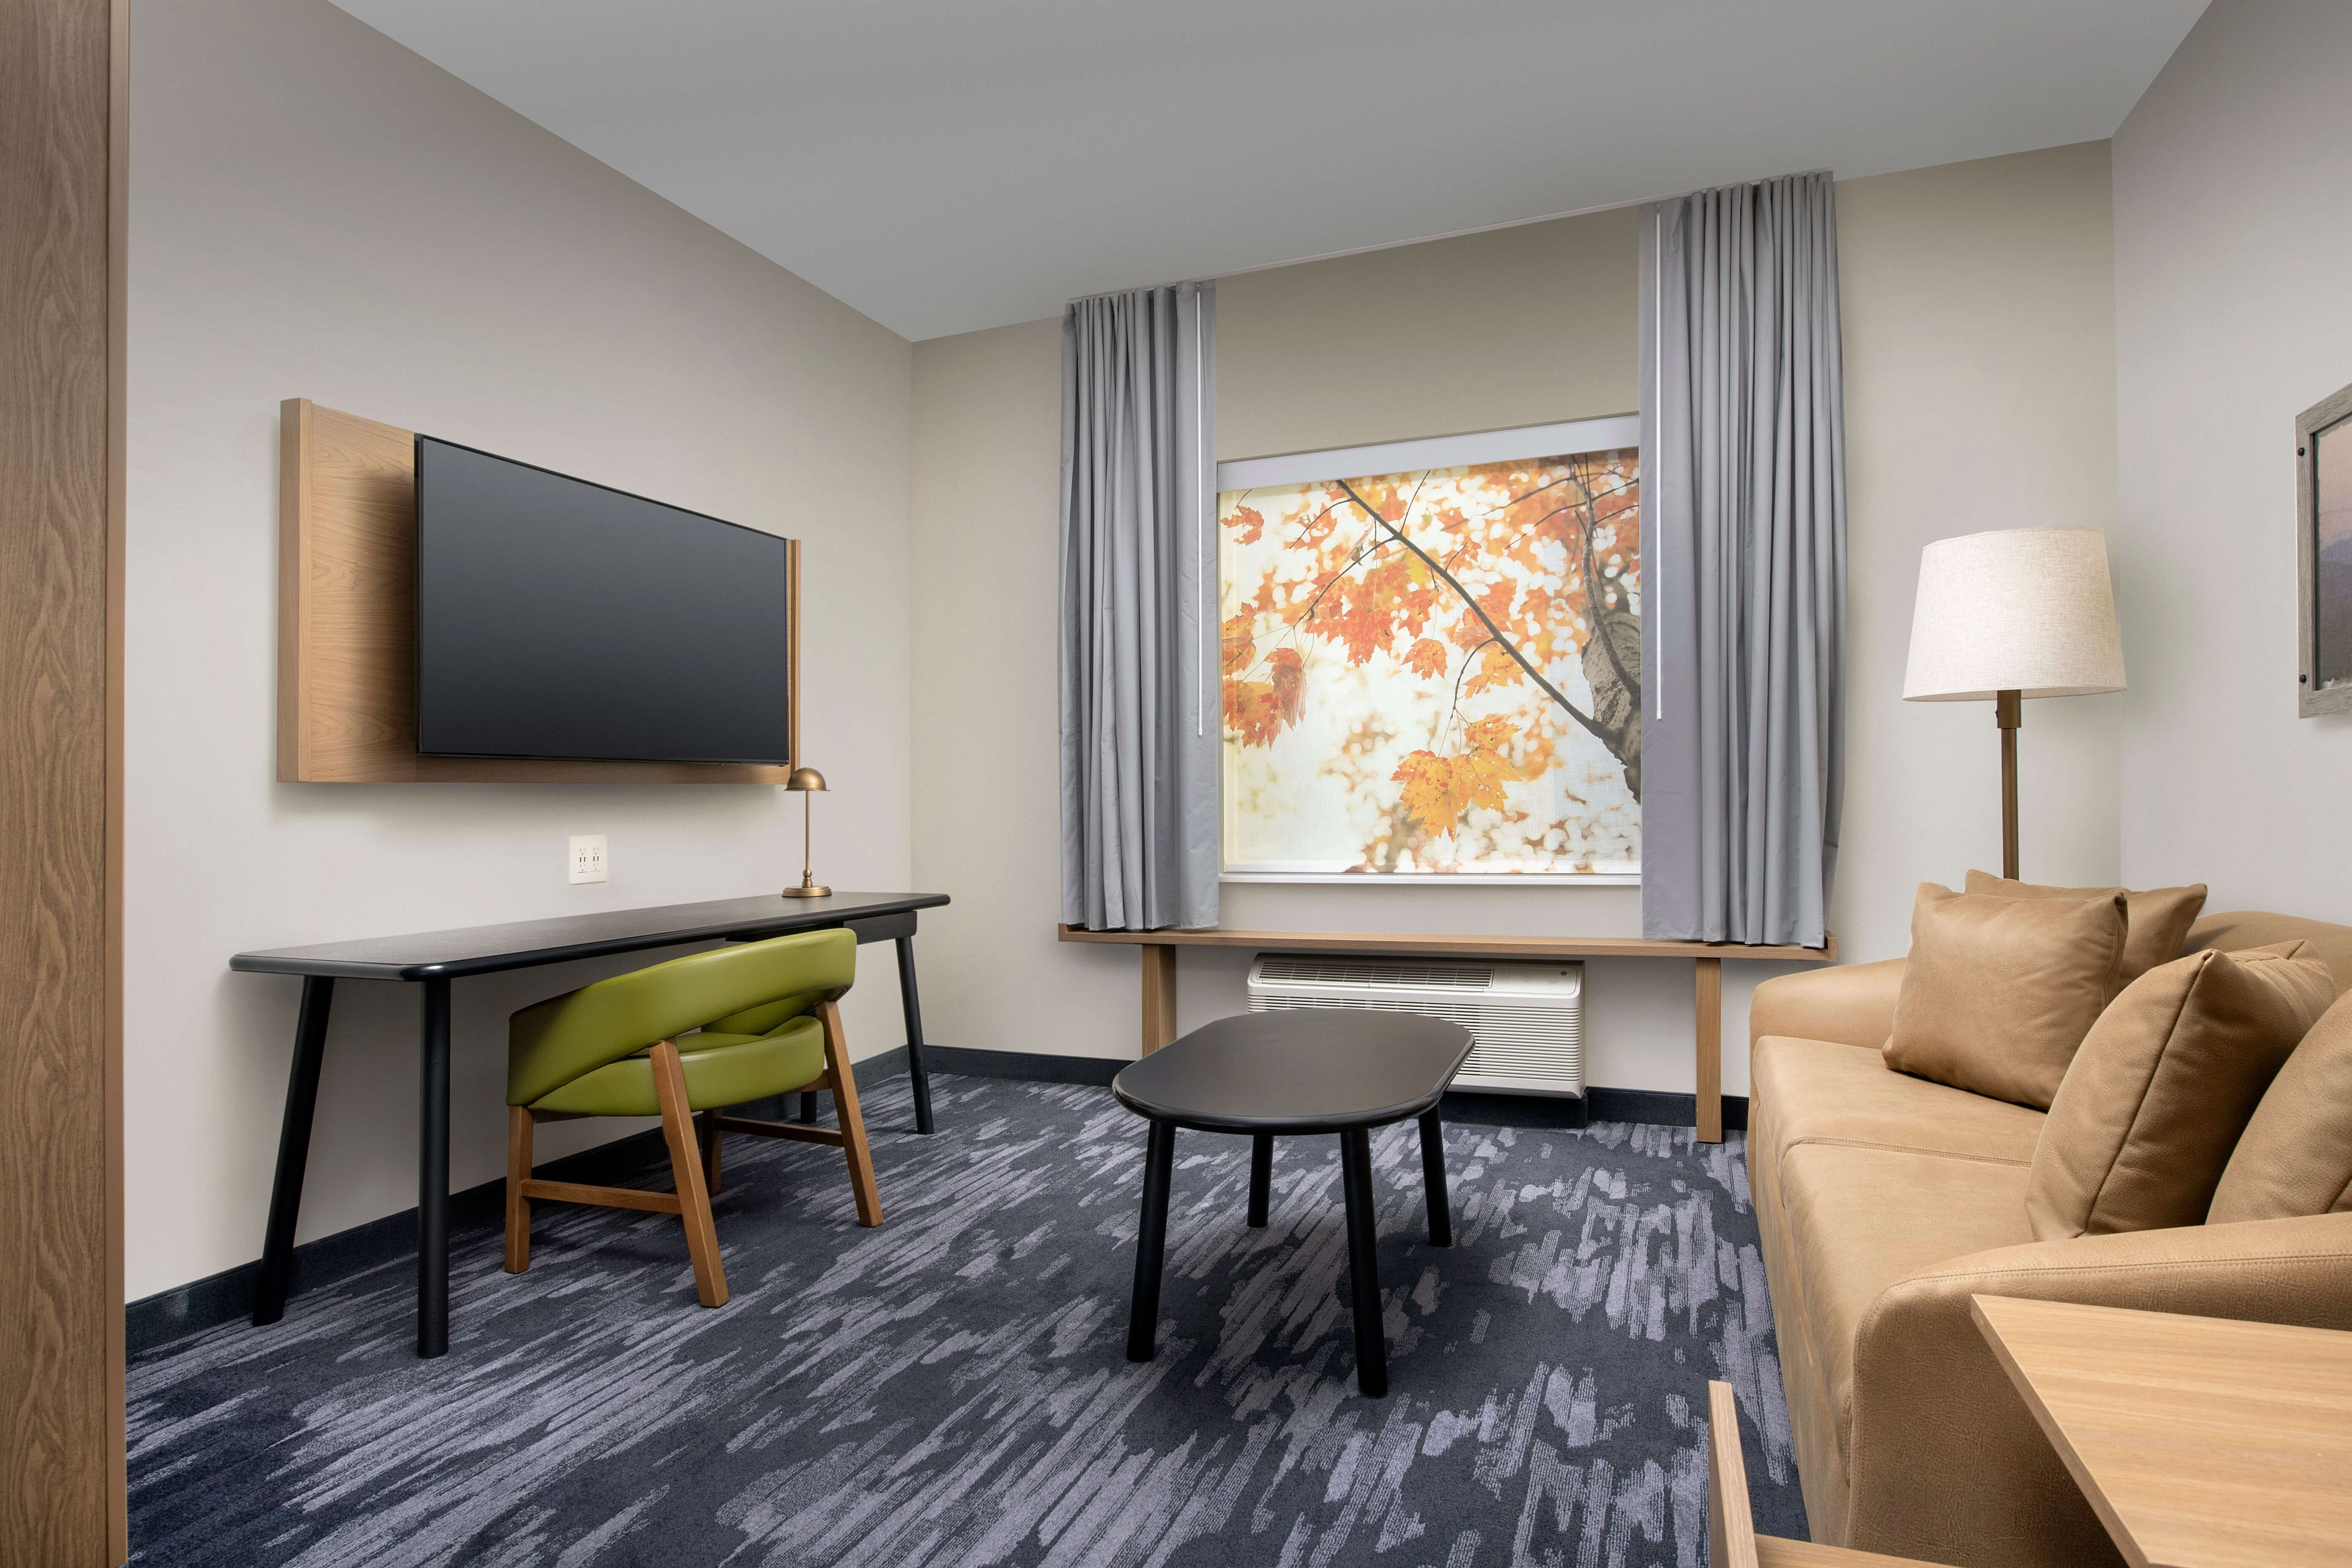 Fairfield Inn & Suites Miami Miami Airport West/Doral